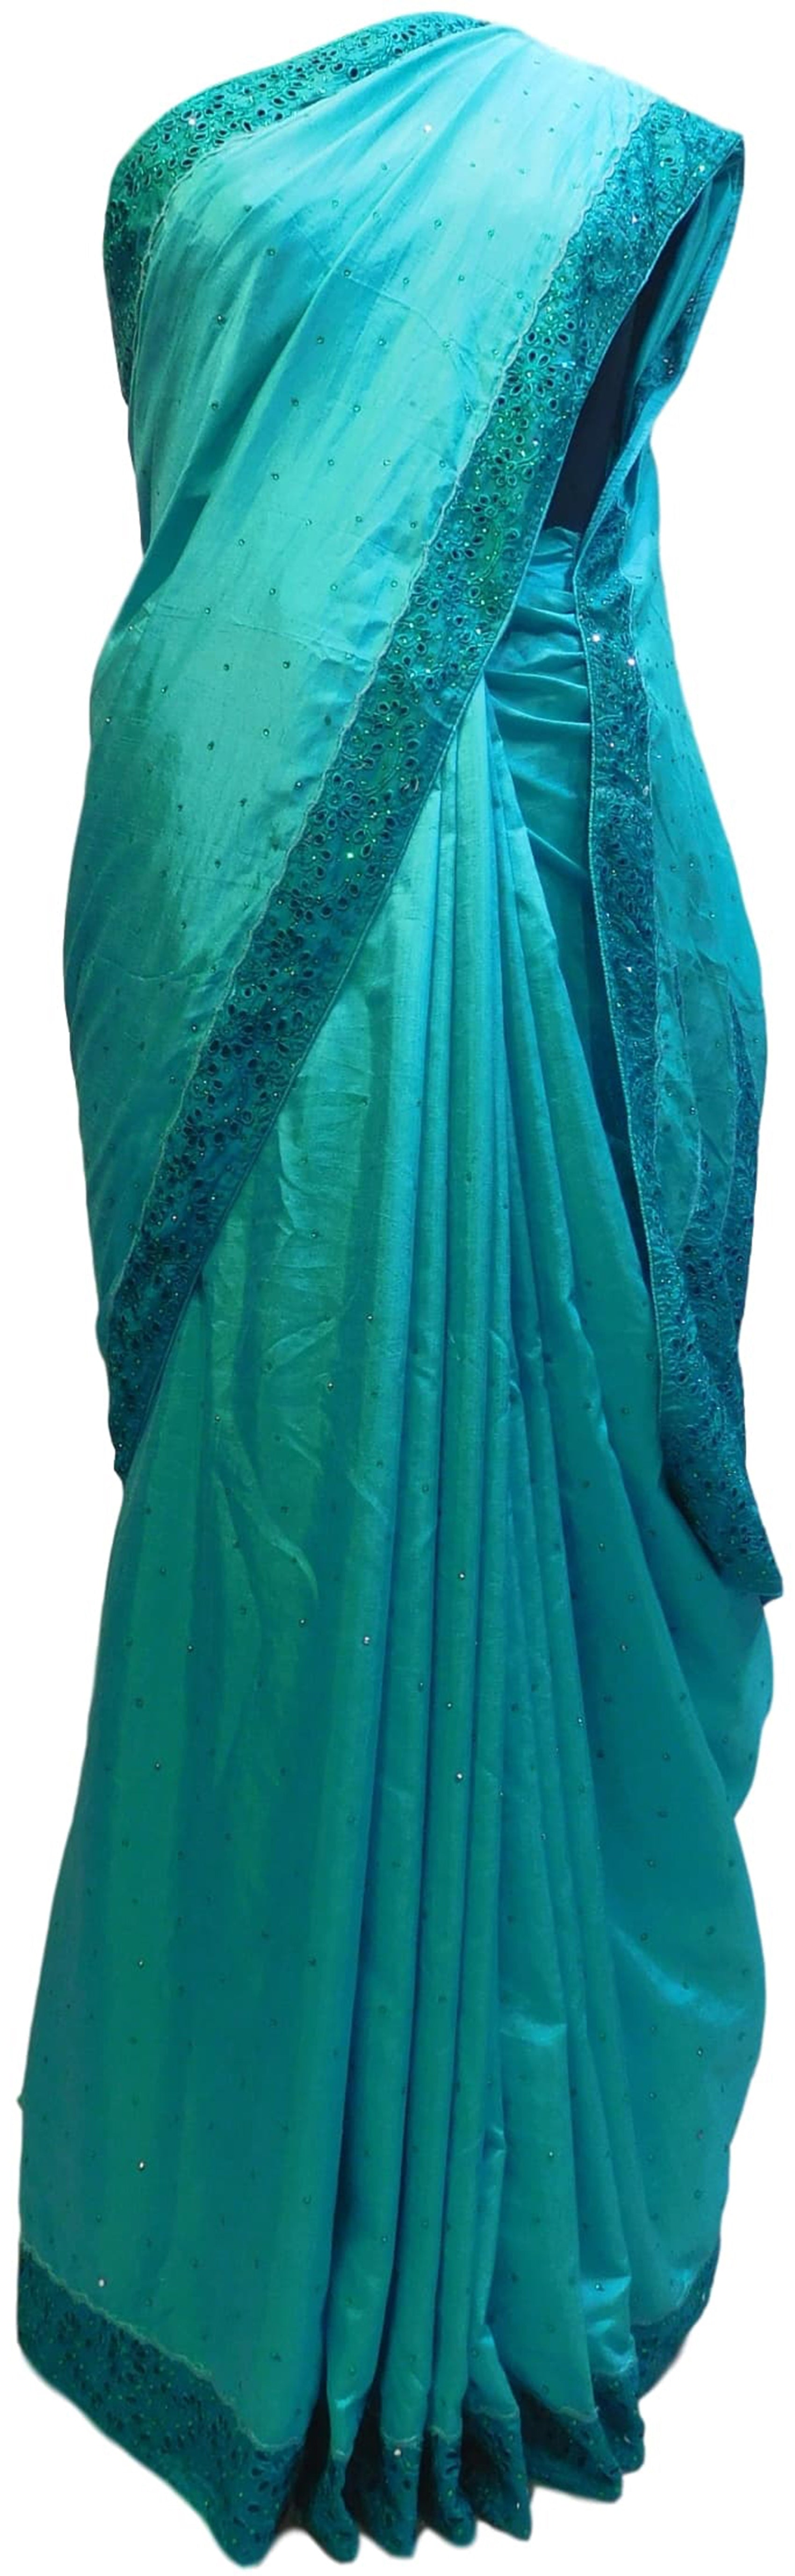 Turquoise Designer Silk Hand Embroidery Thread Stone Work Saree Cutwork Sari